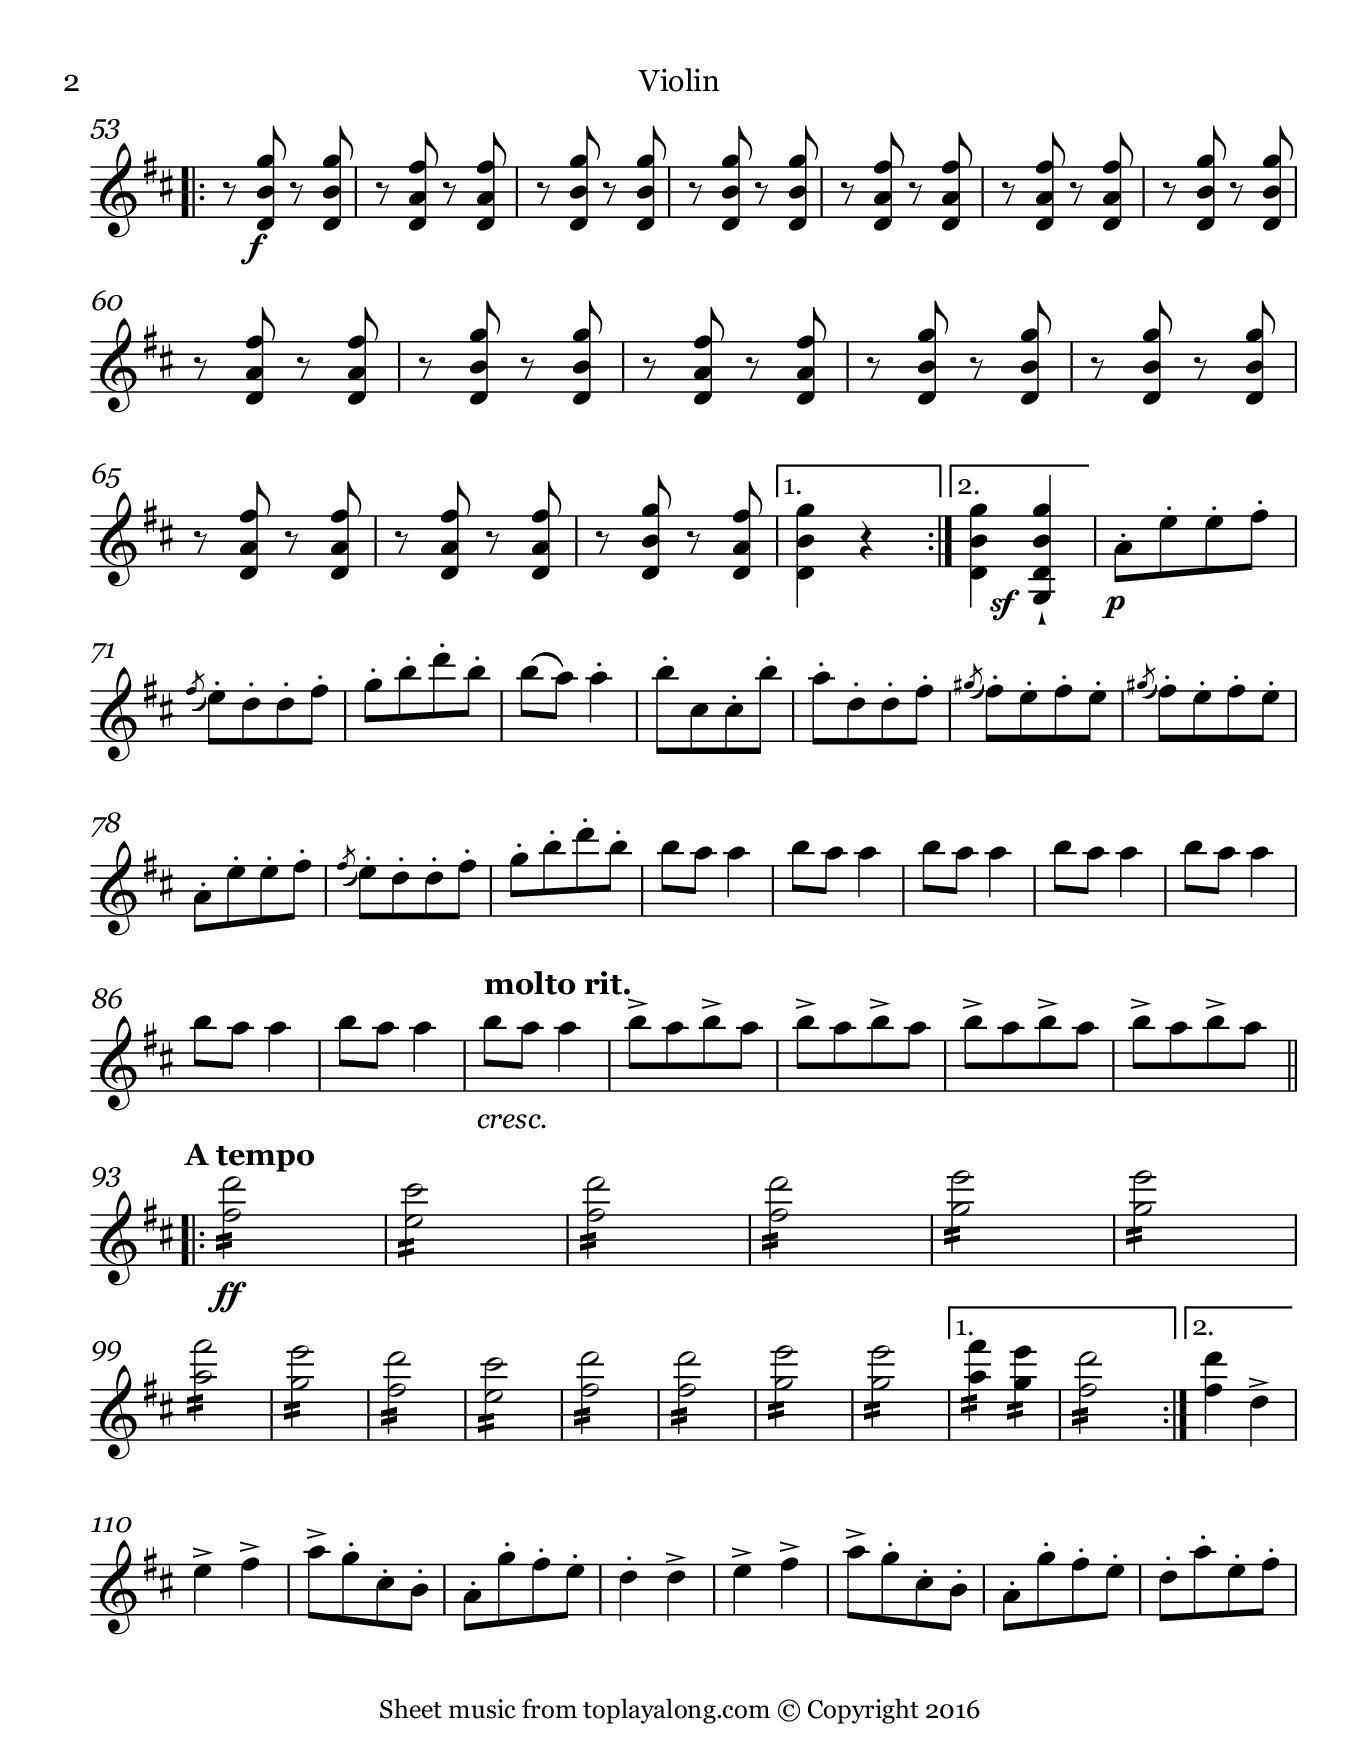 Infernal Galop (Can Can) from Orpheus by Offenbach. Sheet music for Violin, page 2.